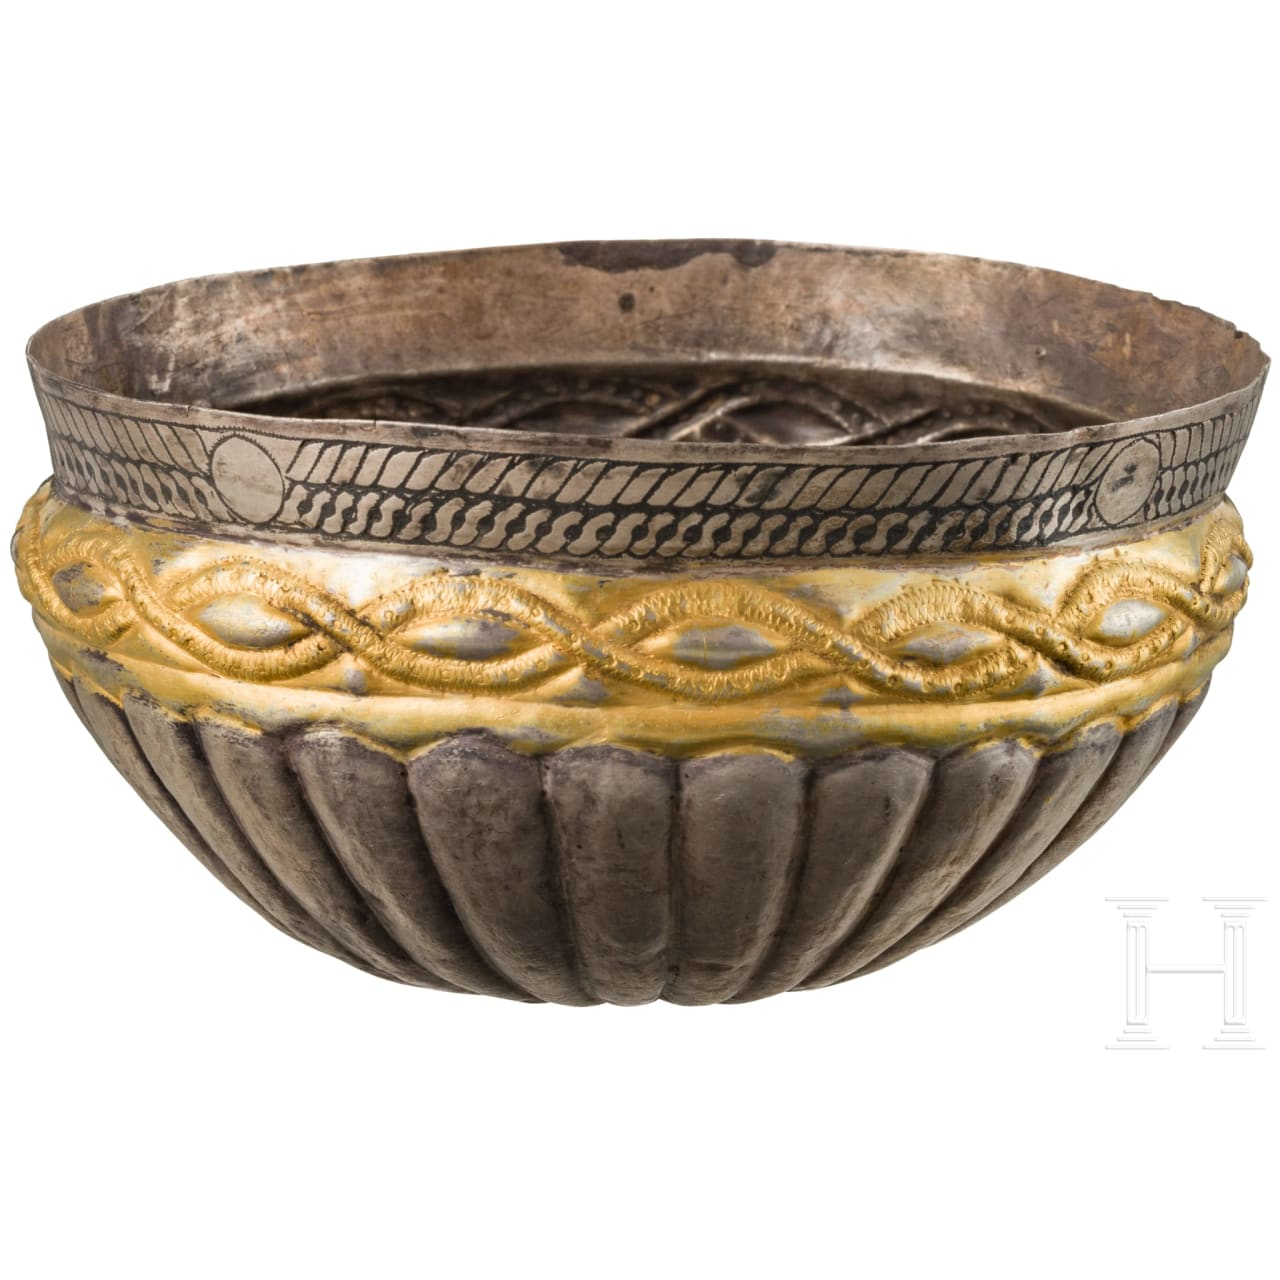 An East European silver Viking bowl, partially gilded, 11th - 12th century